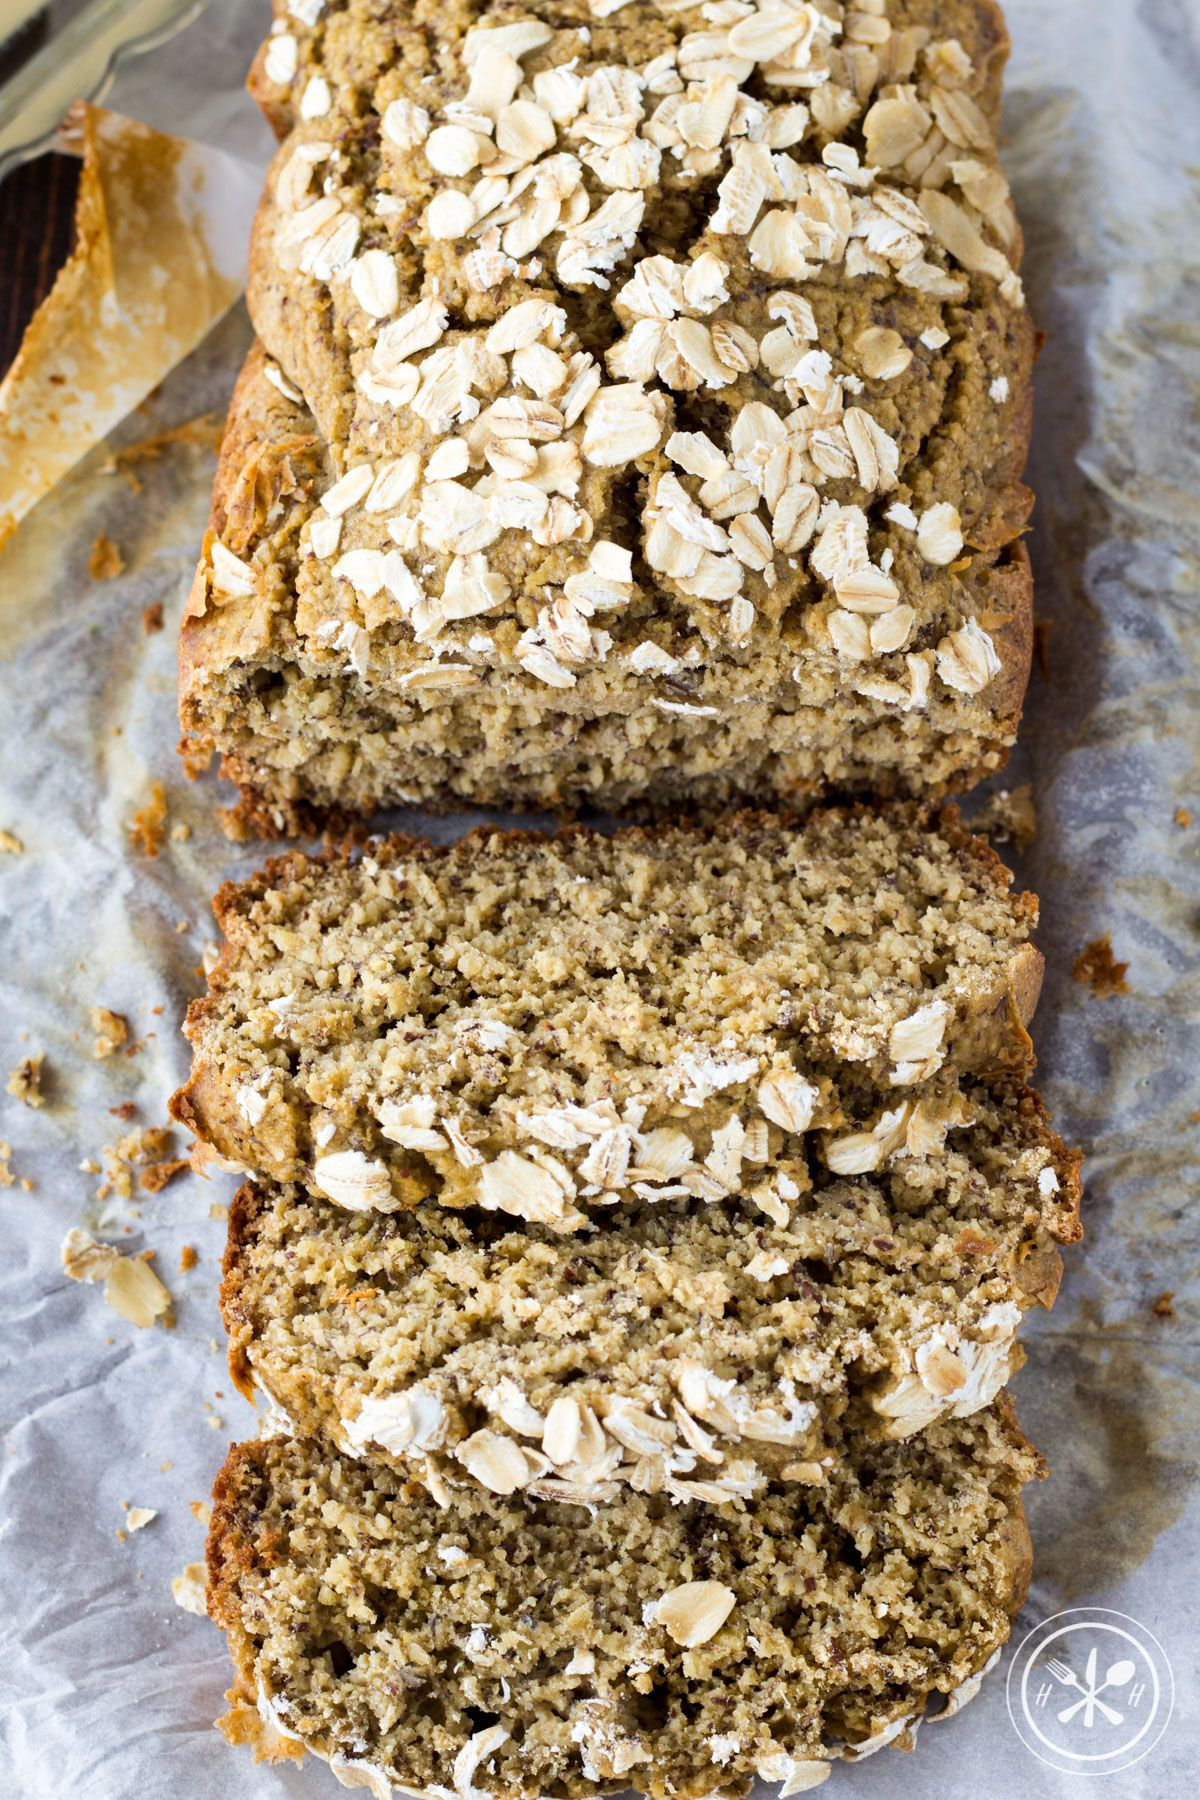 This gluten-free oat flour bread is made with just a few ...